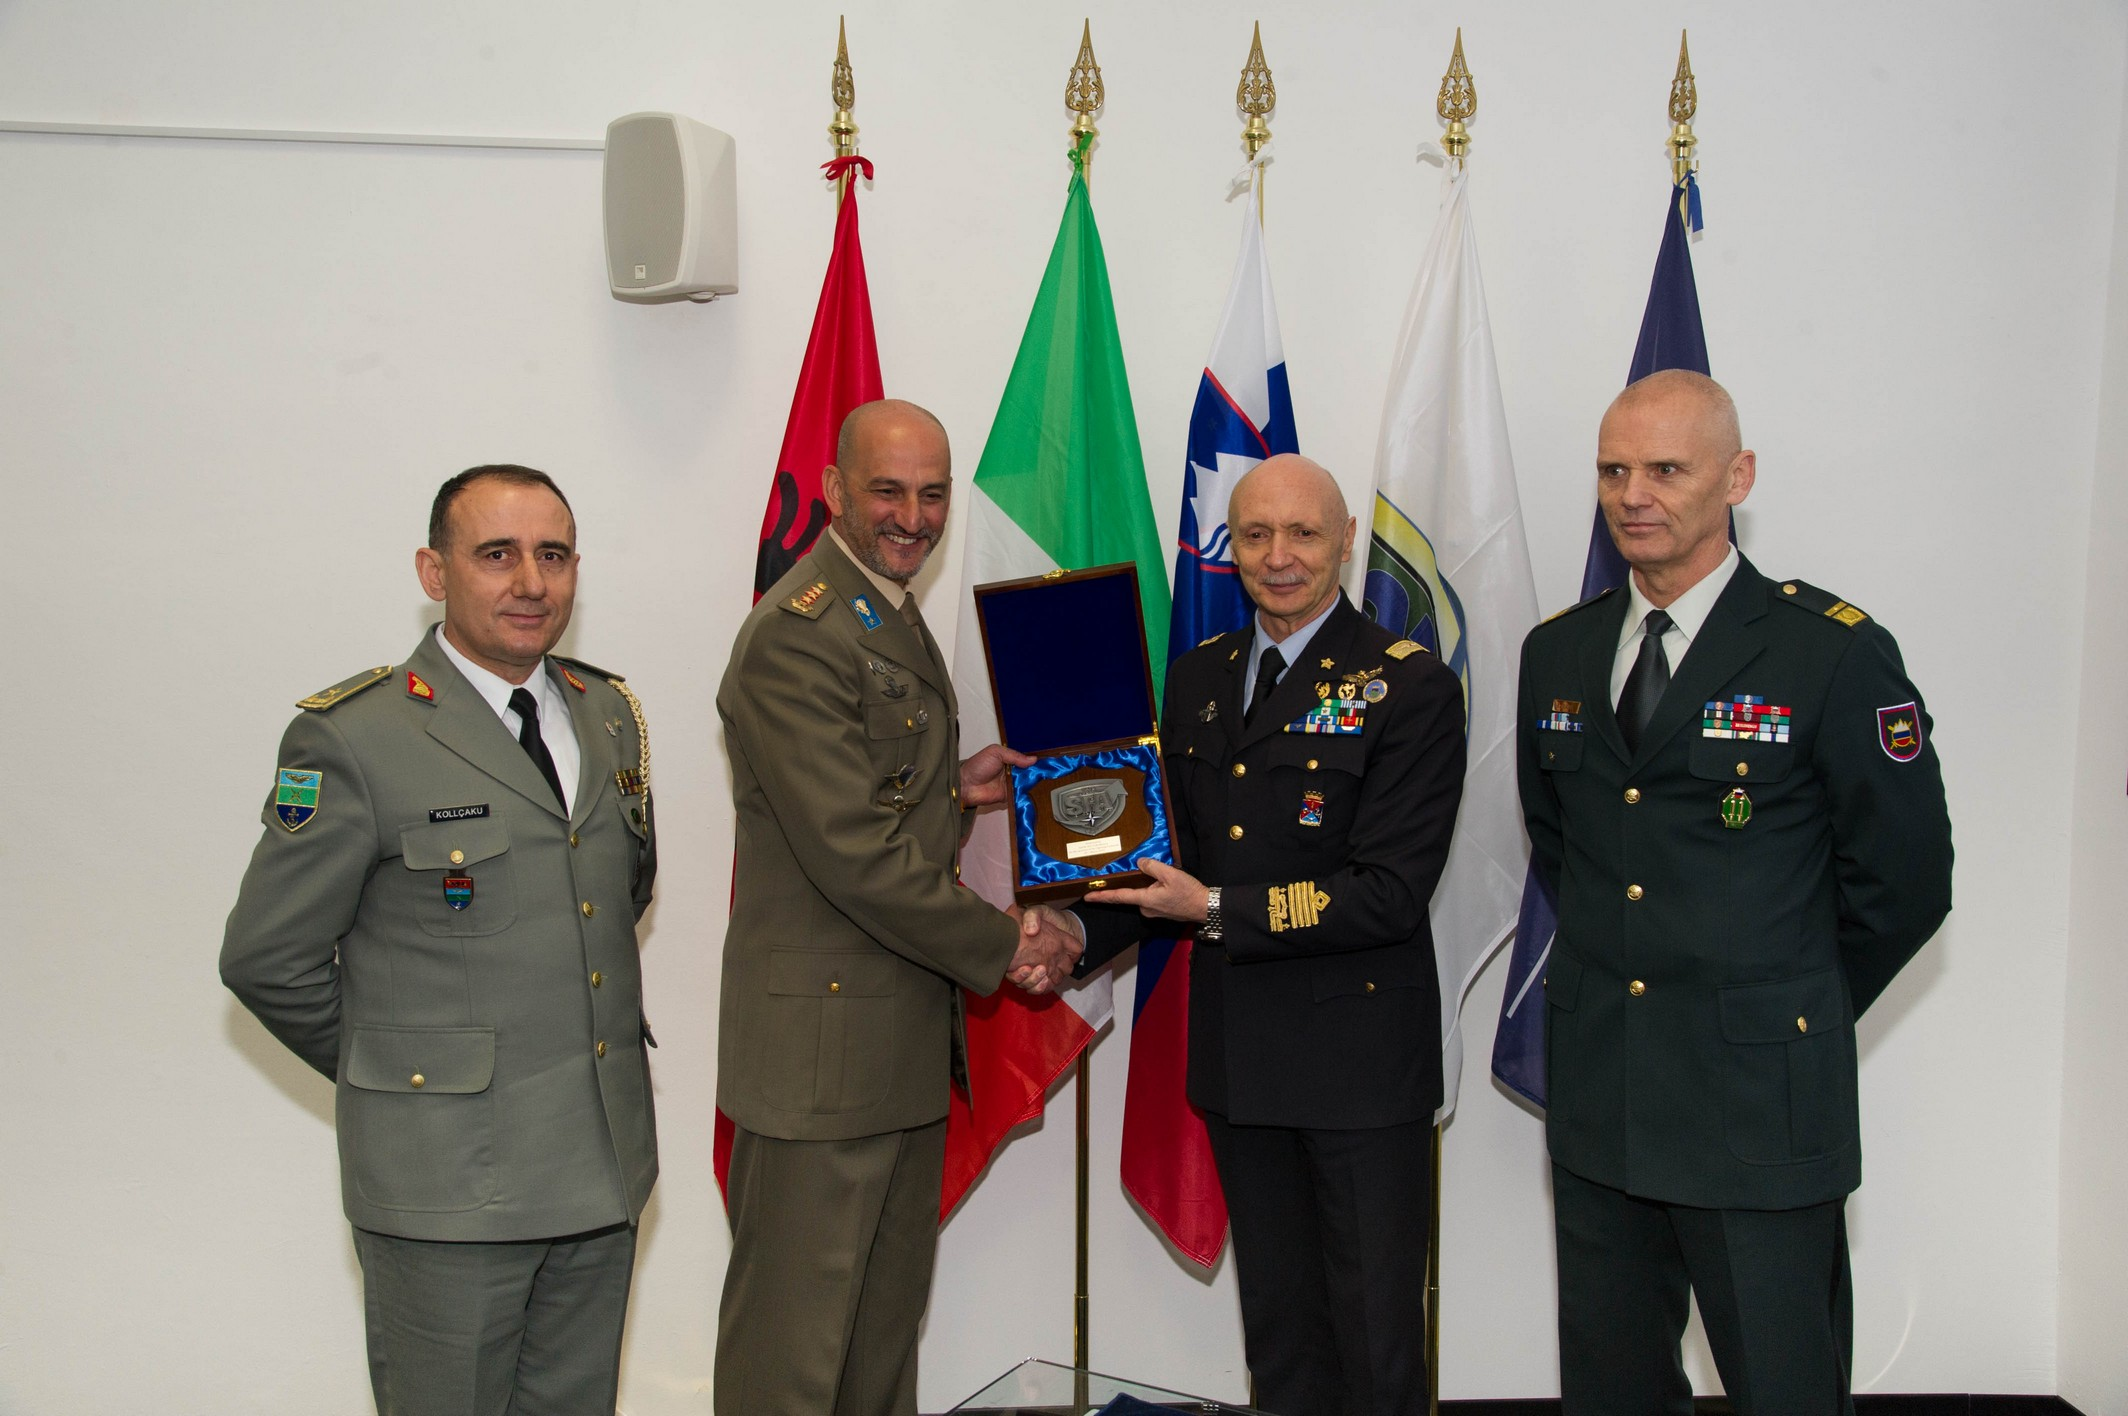 26th MARCH 2019: NATO SFA COE OPENING CEREMONY CELEBRATION